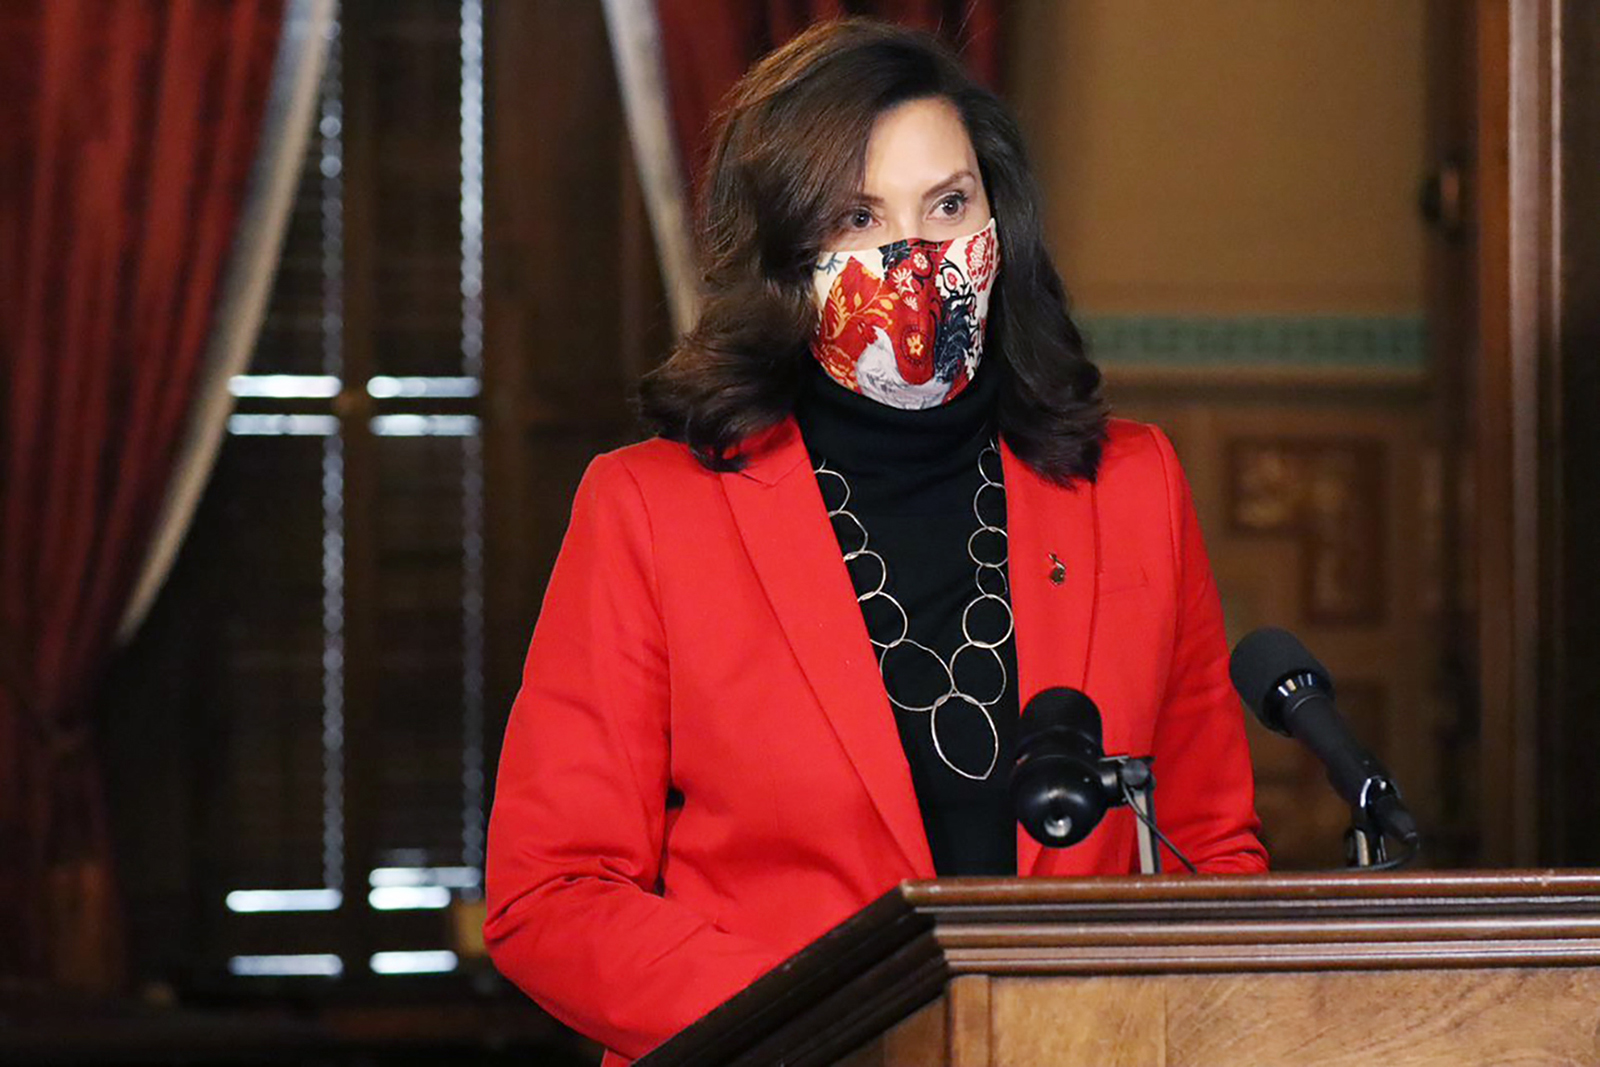 Gov. Gretchen Whitmer addresses the state during a speech in Lansing, Michigan on Tuesday, Dec. 15.